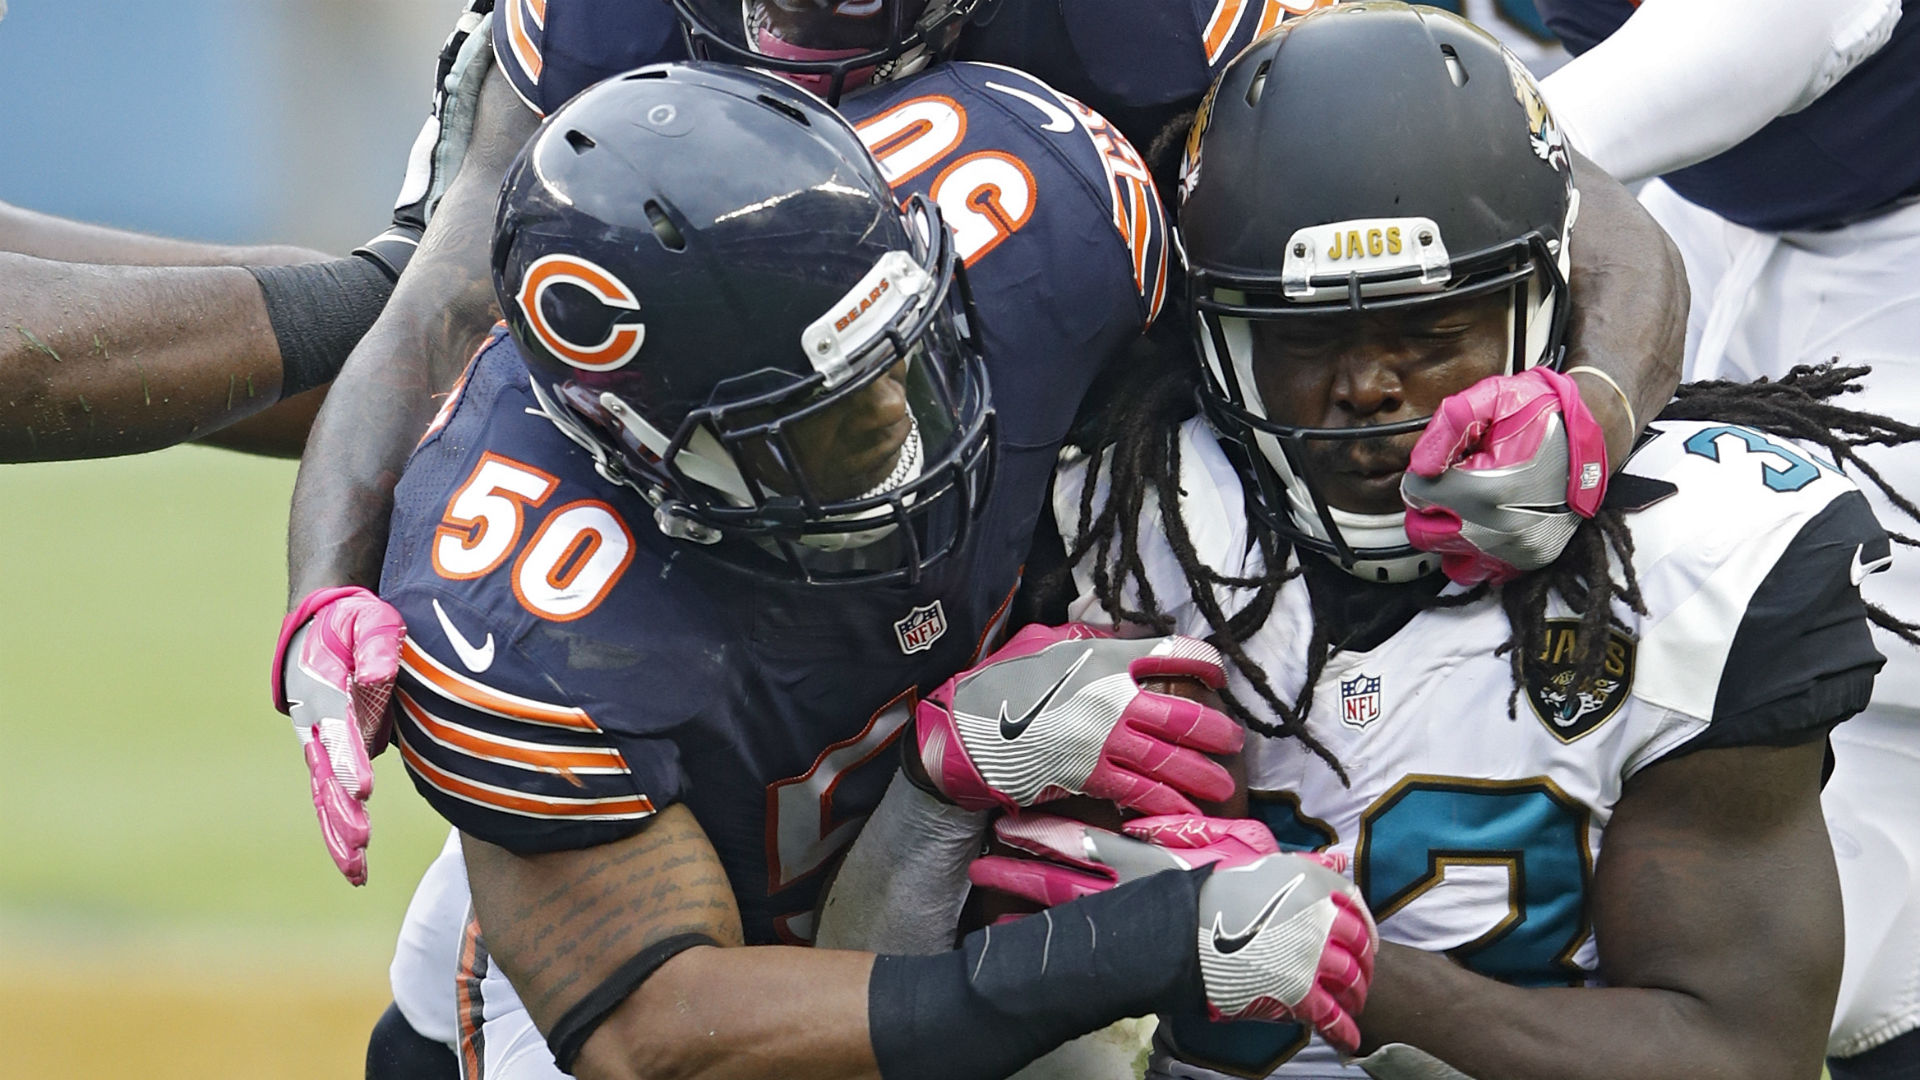 Bears' Freeman saved fellow traveler's life with airport Heimlich maneuver